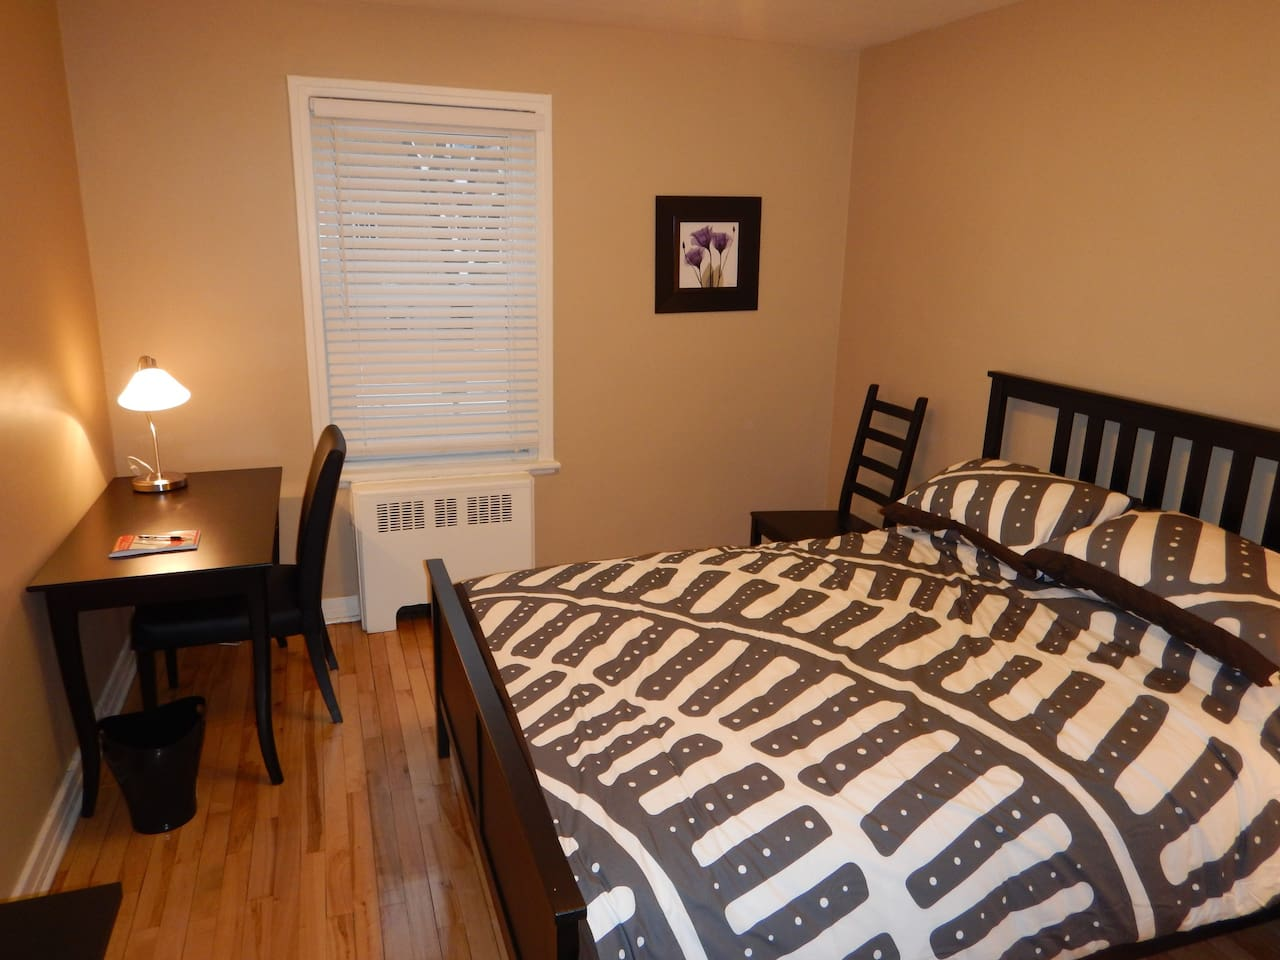 Spacious 2 bedrooms and 1 living room